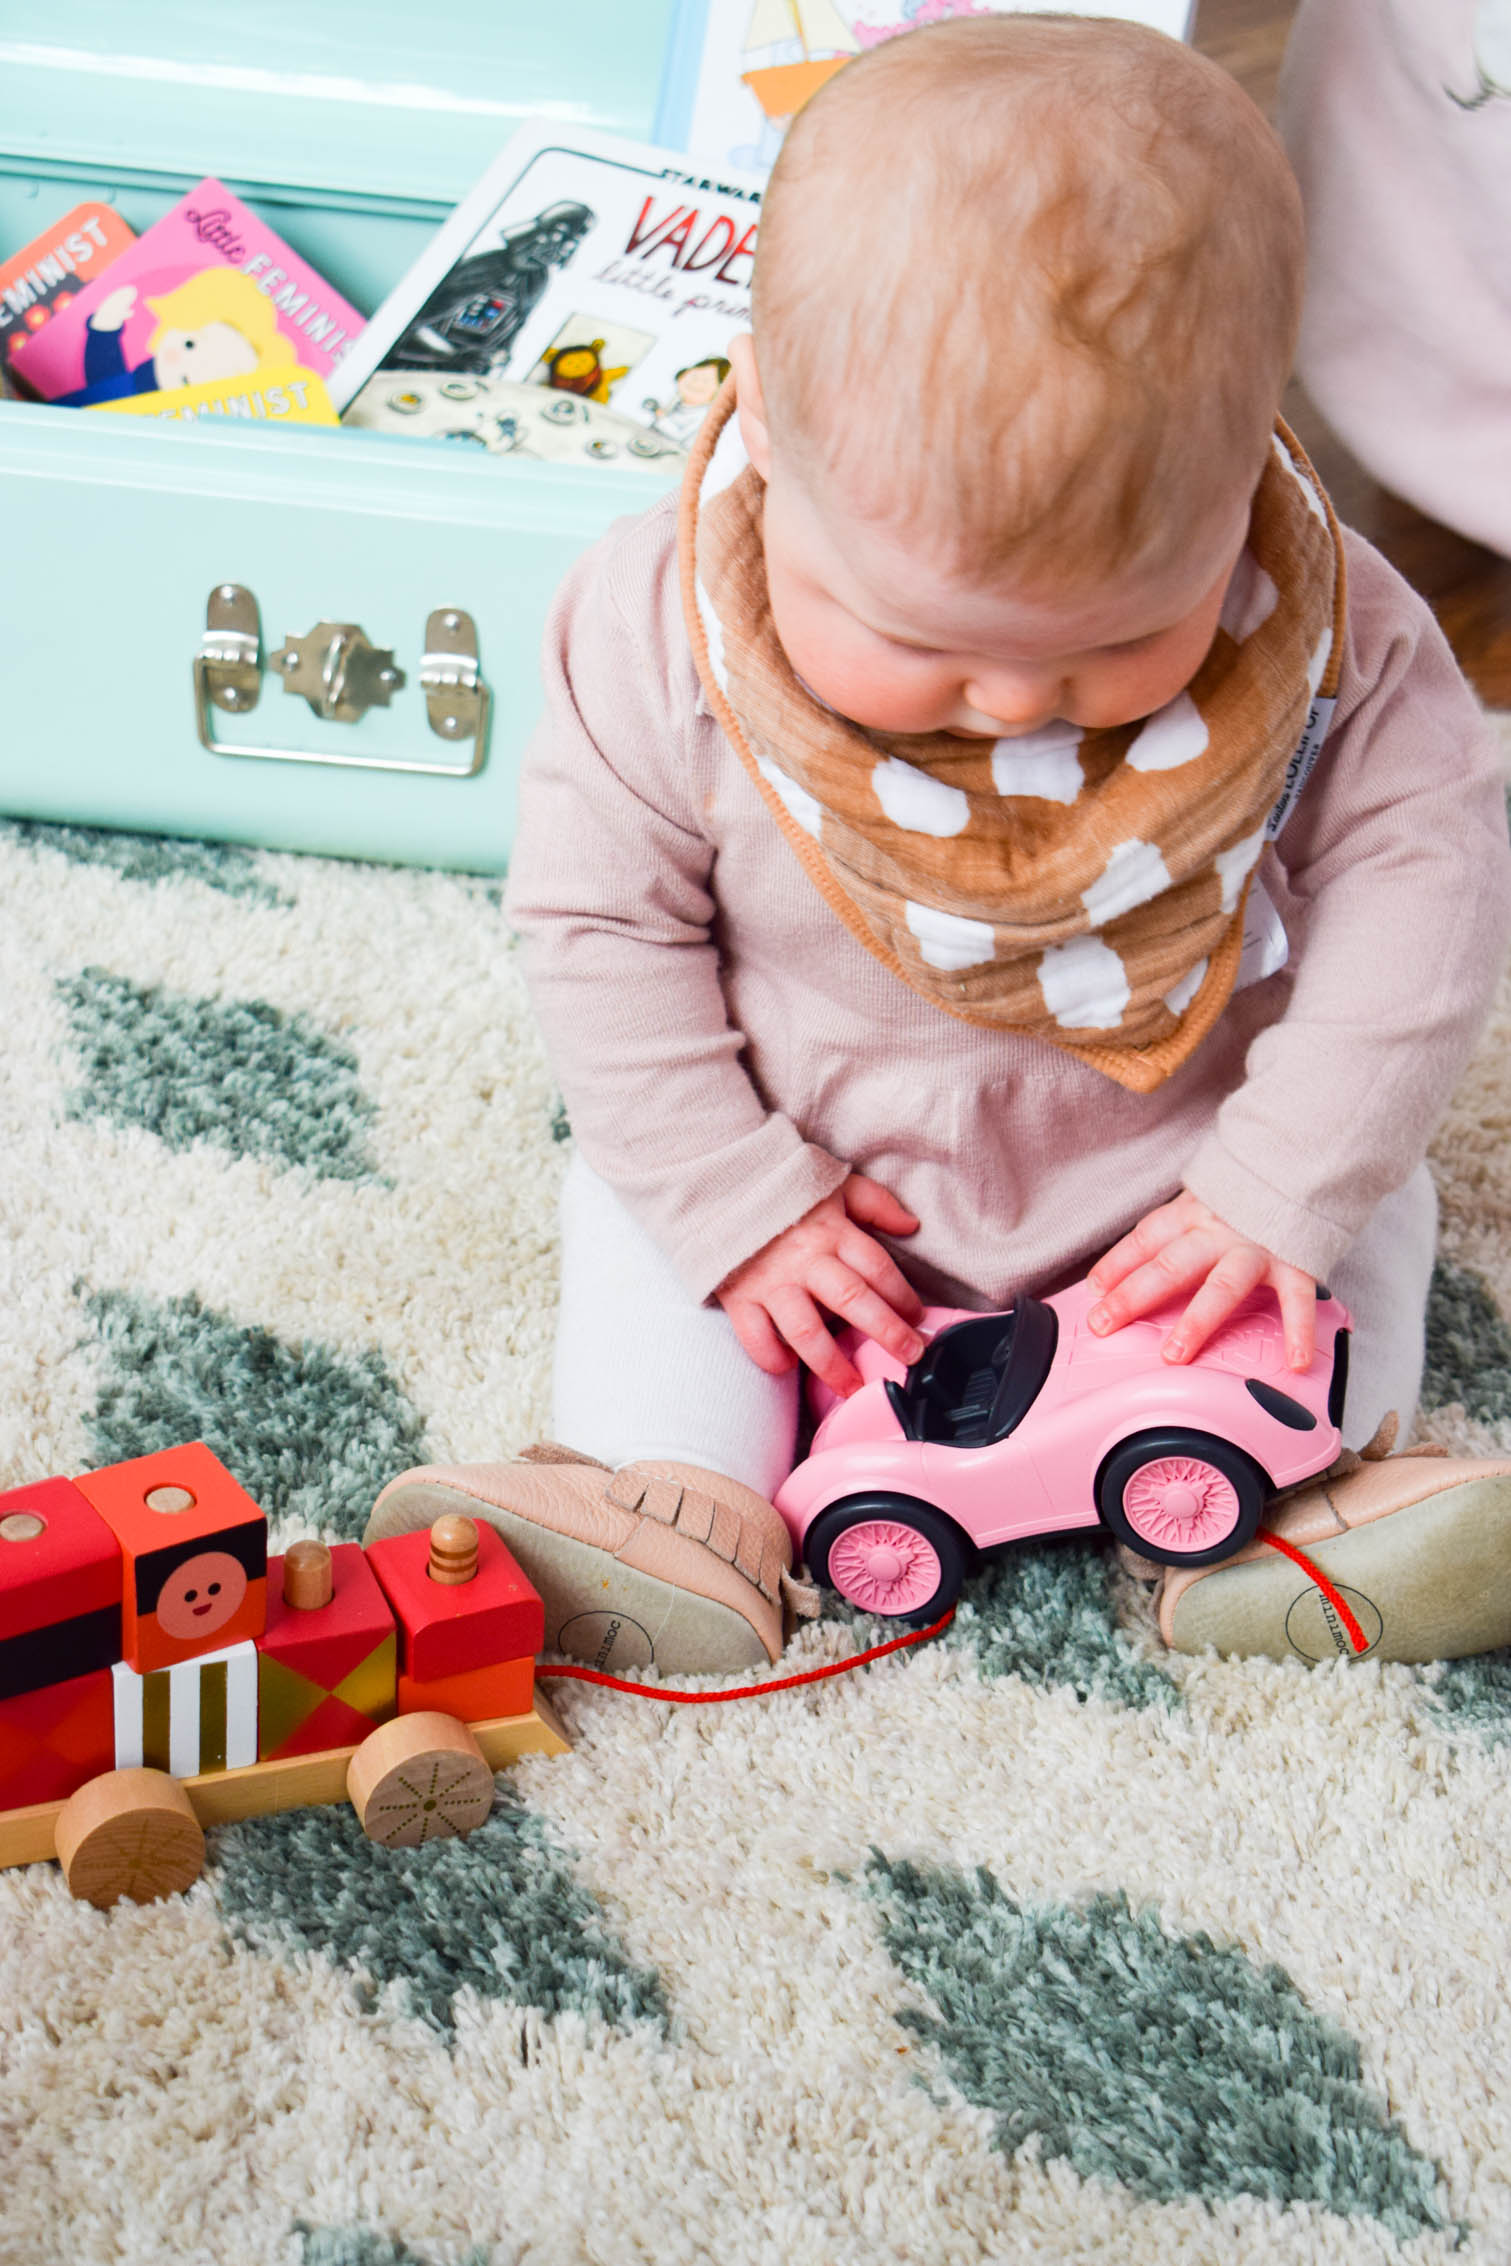 Creating stimulating and enriching activities for a baby can't be tricky, so I've created a toy box full of colourful baby play time ideas.